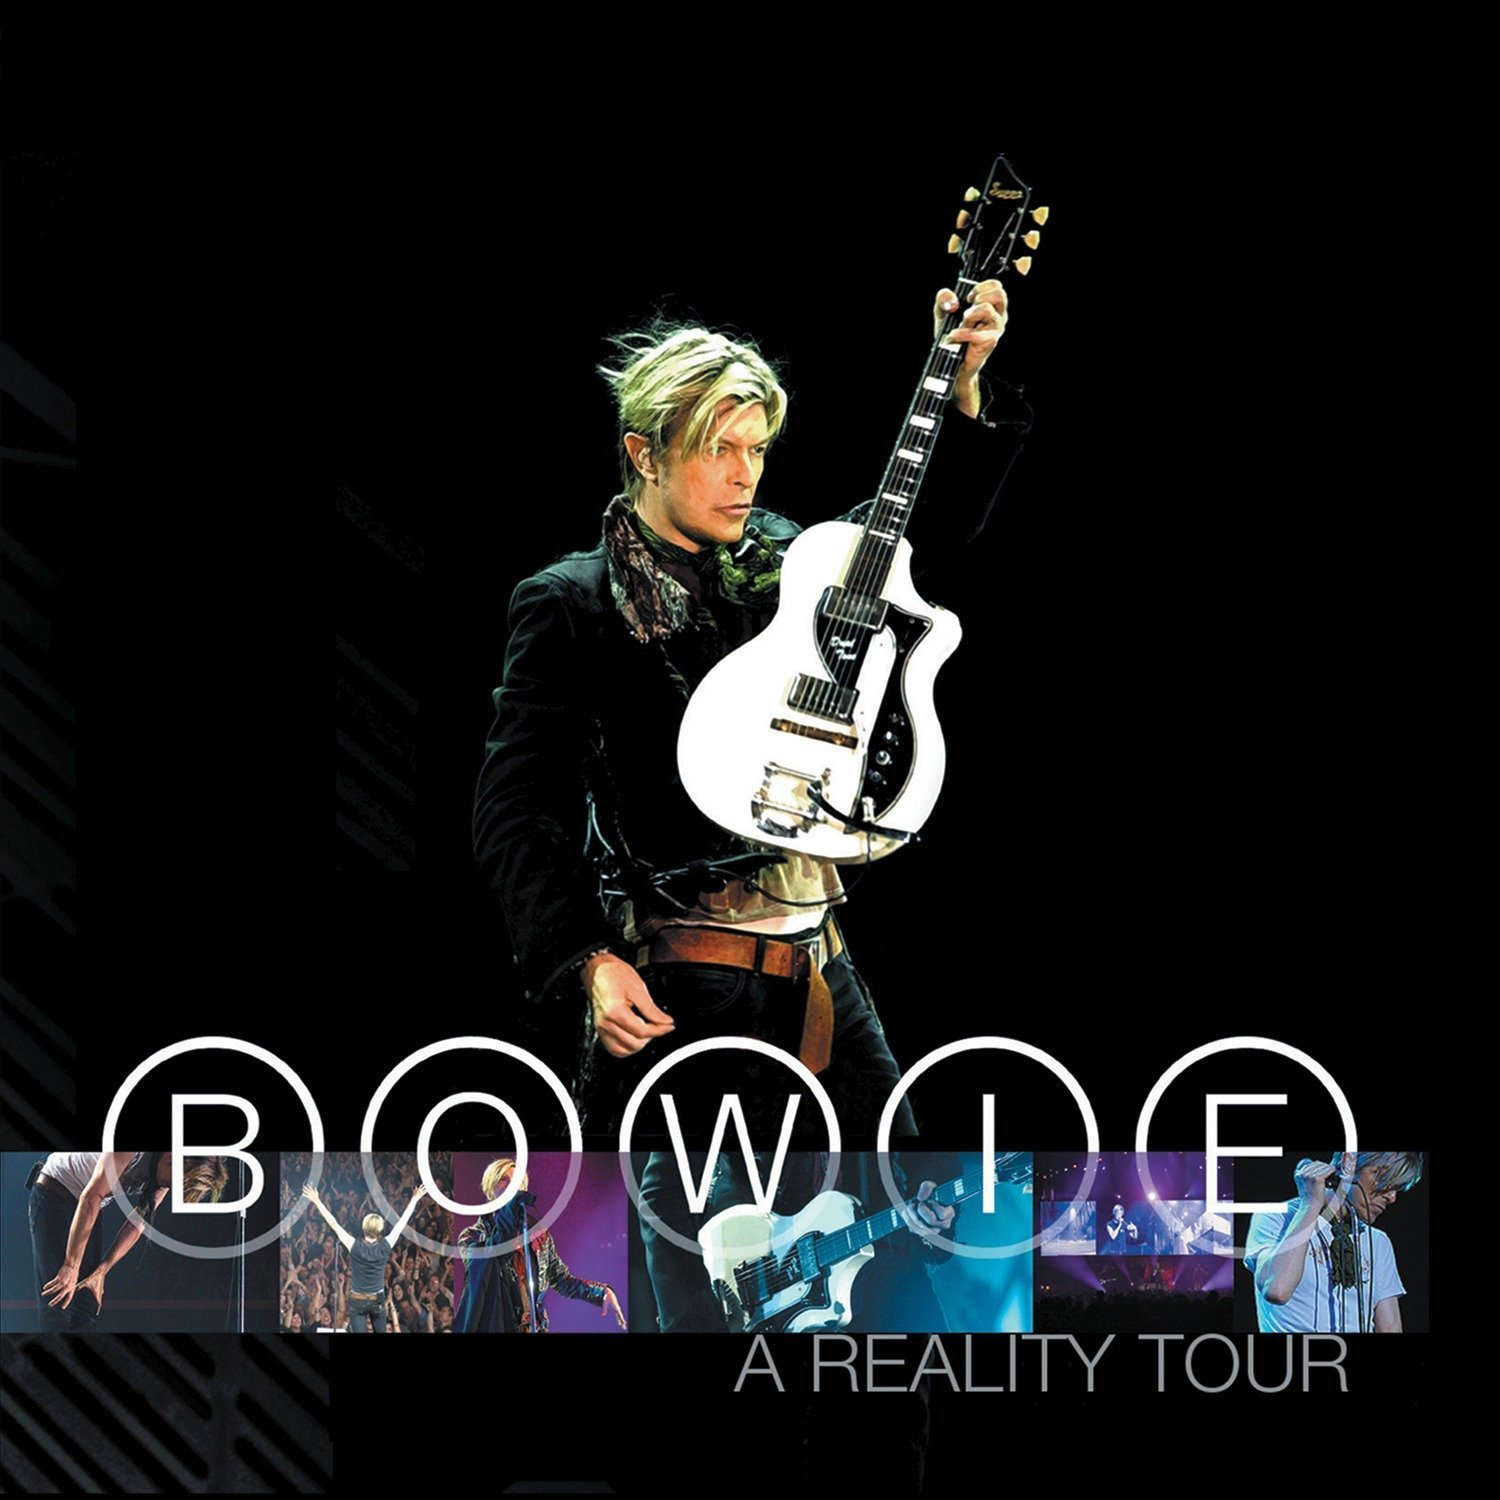 David Bowie Reality Tour CD